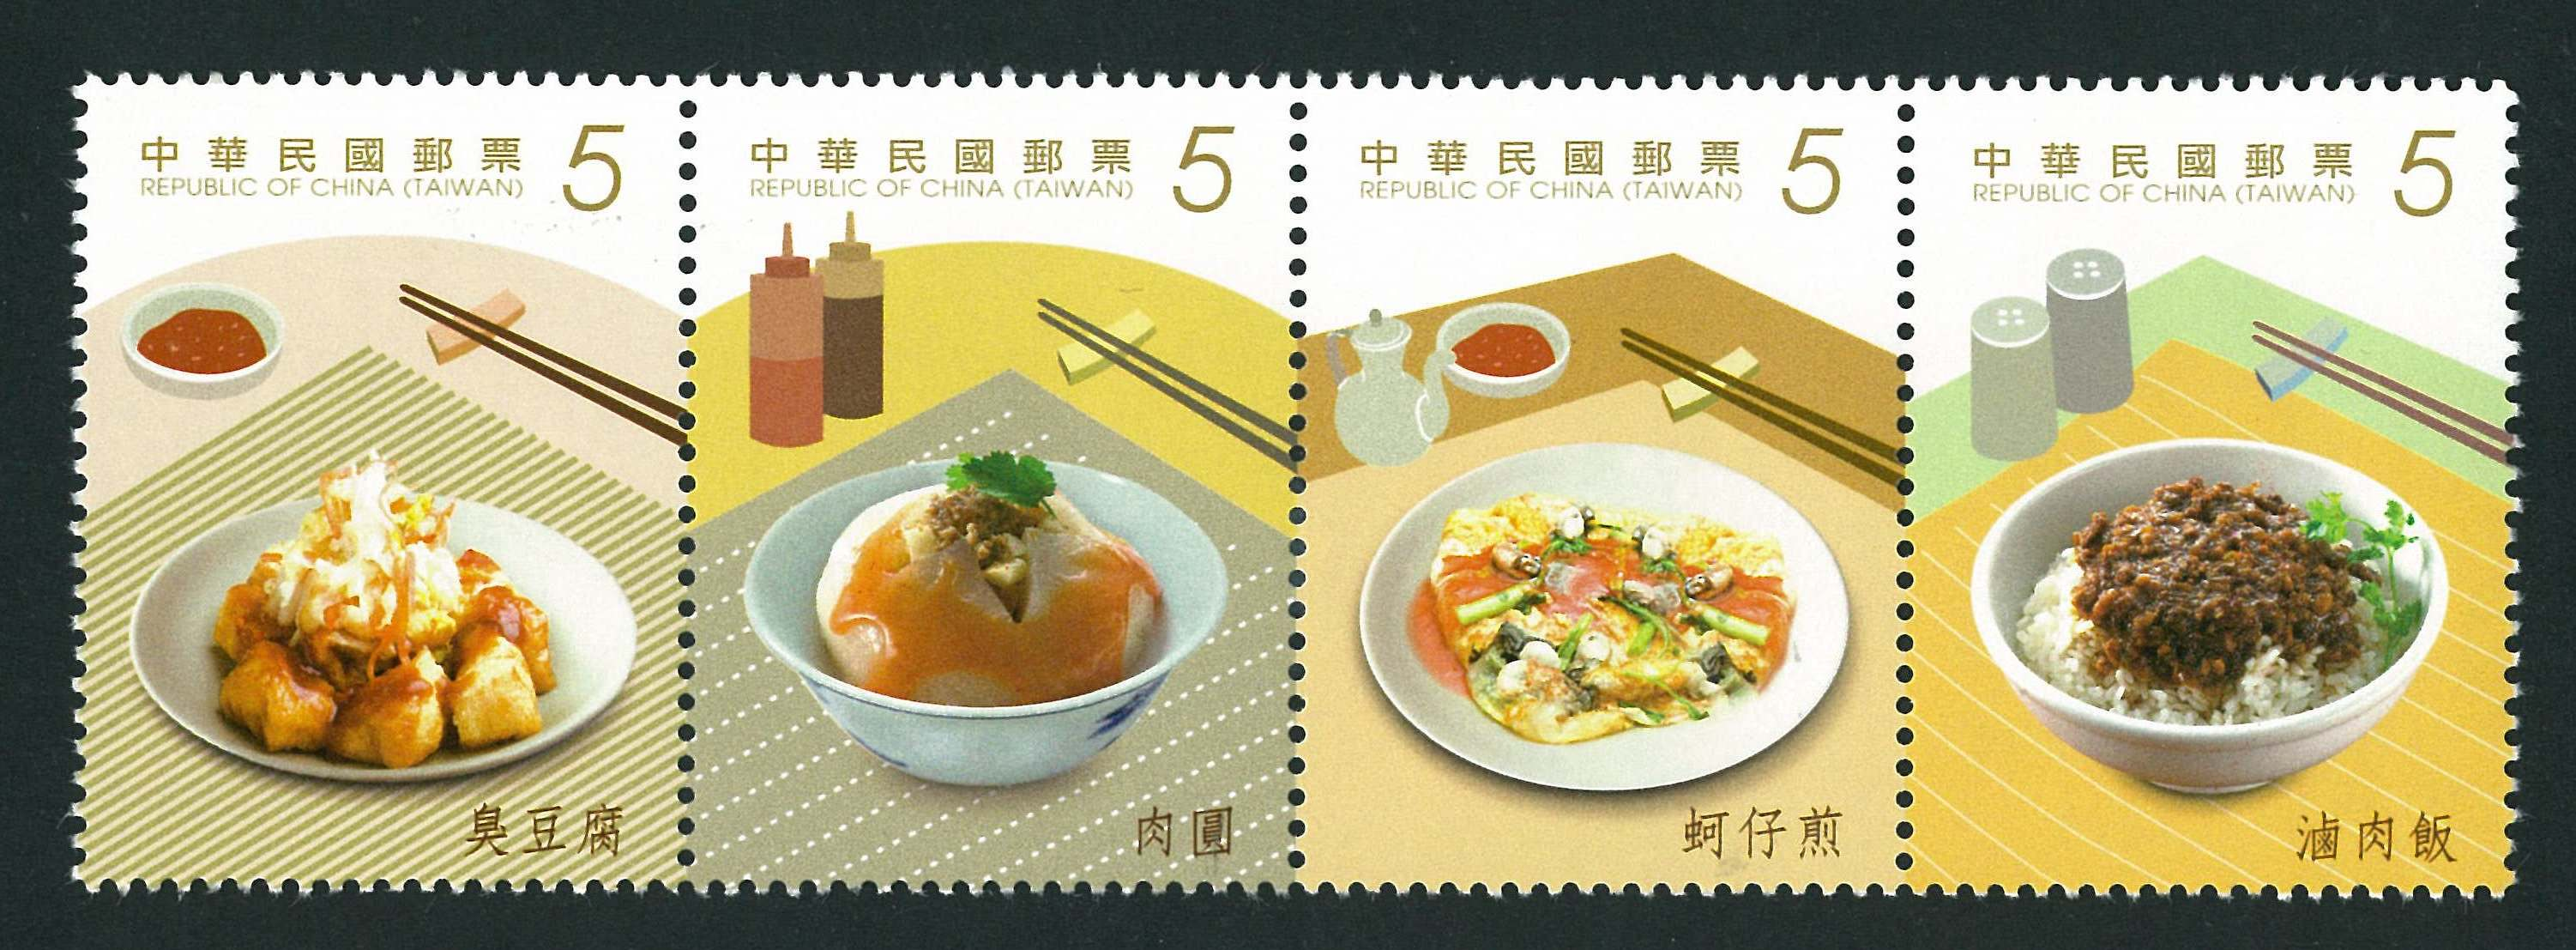 Signature Taiwan Delicacies Postage Stamps – Gourmet Snacks